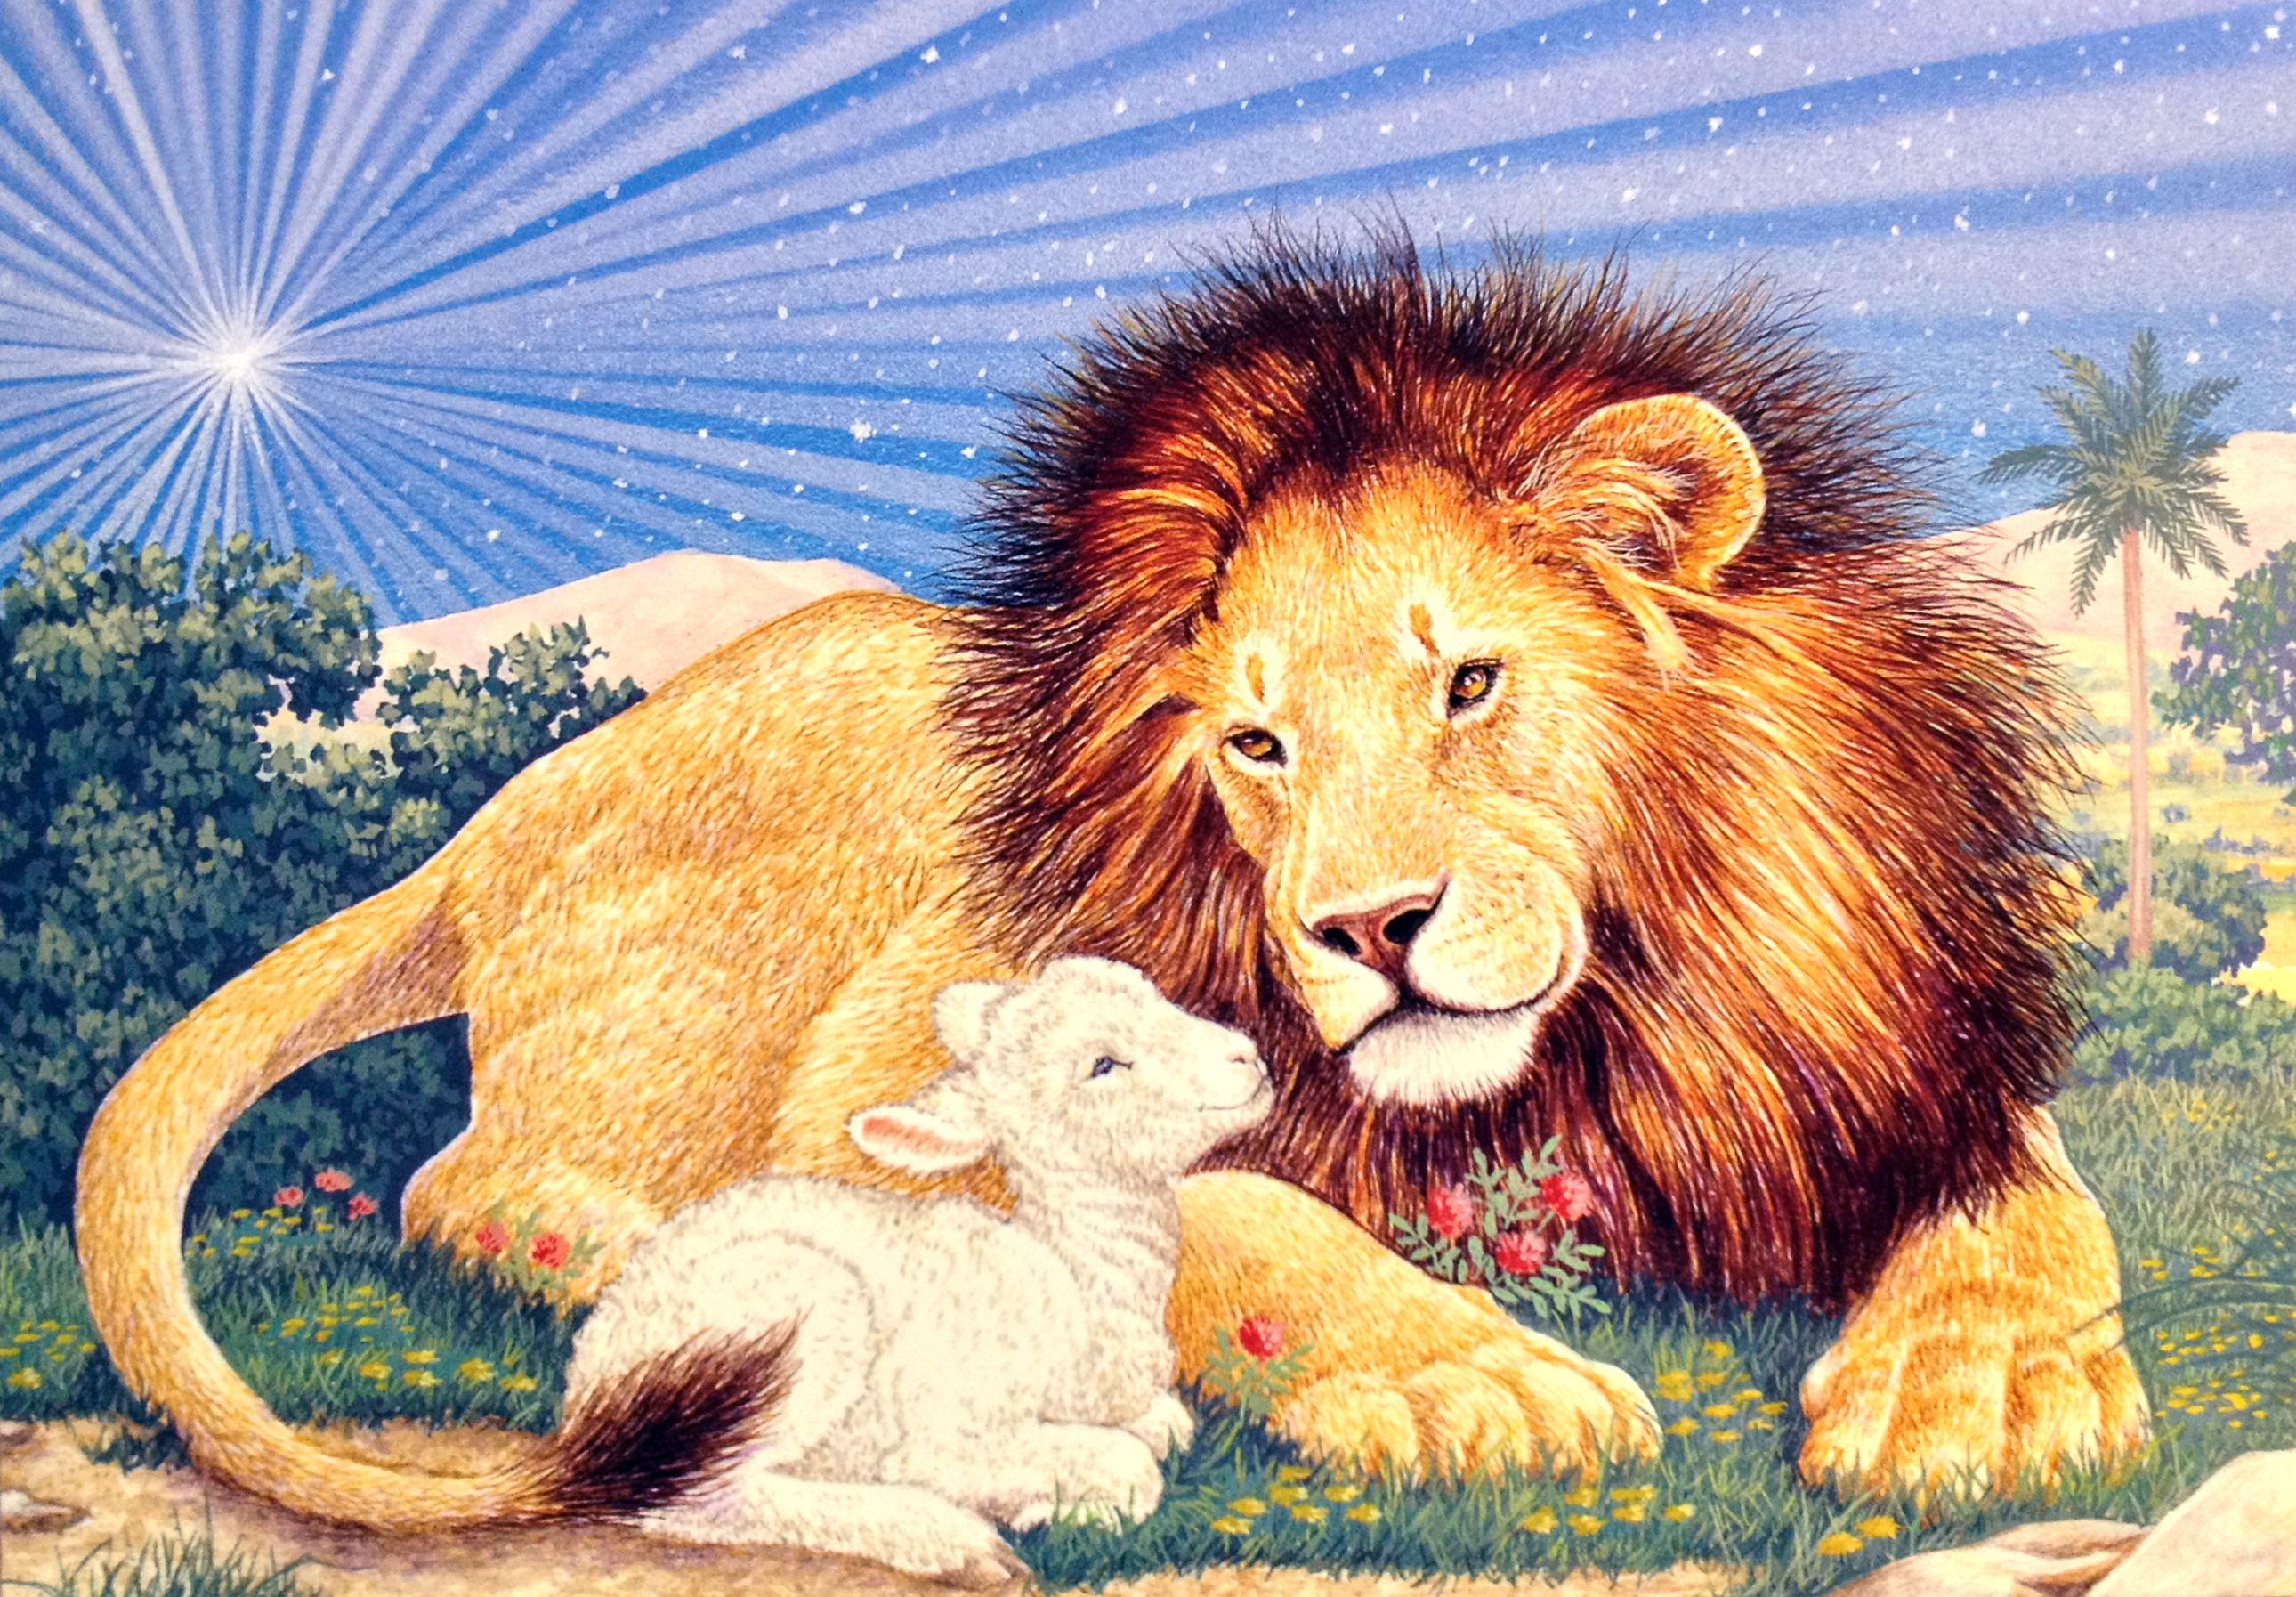 Lion & Lamb Christmas card by Colorful Images. Inside message ...